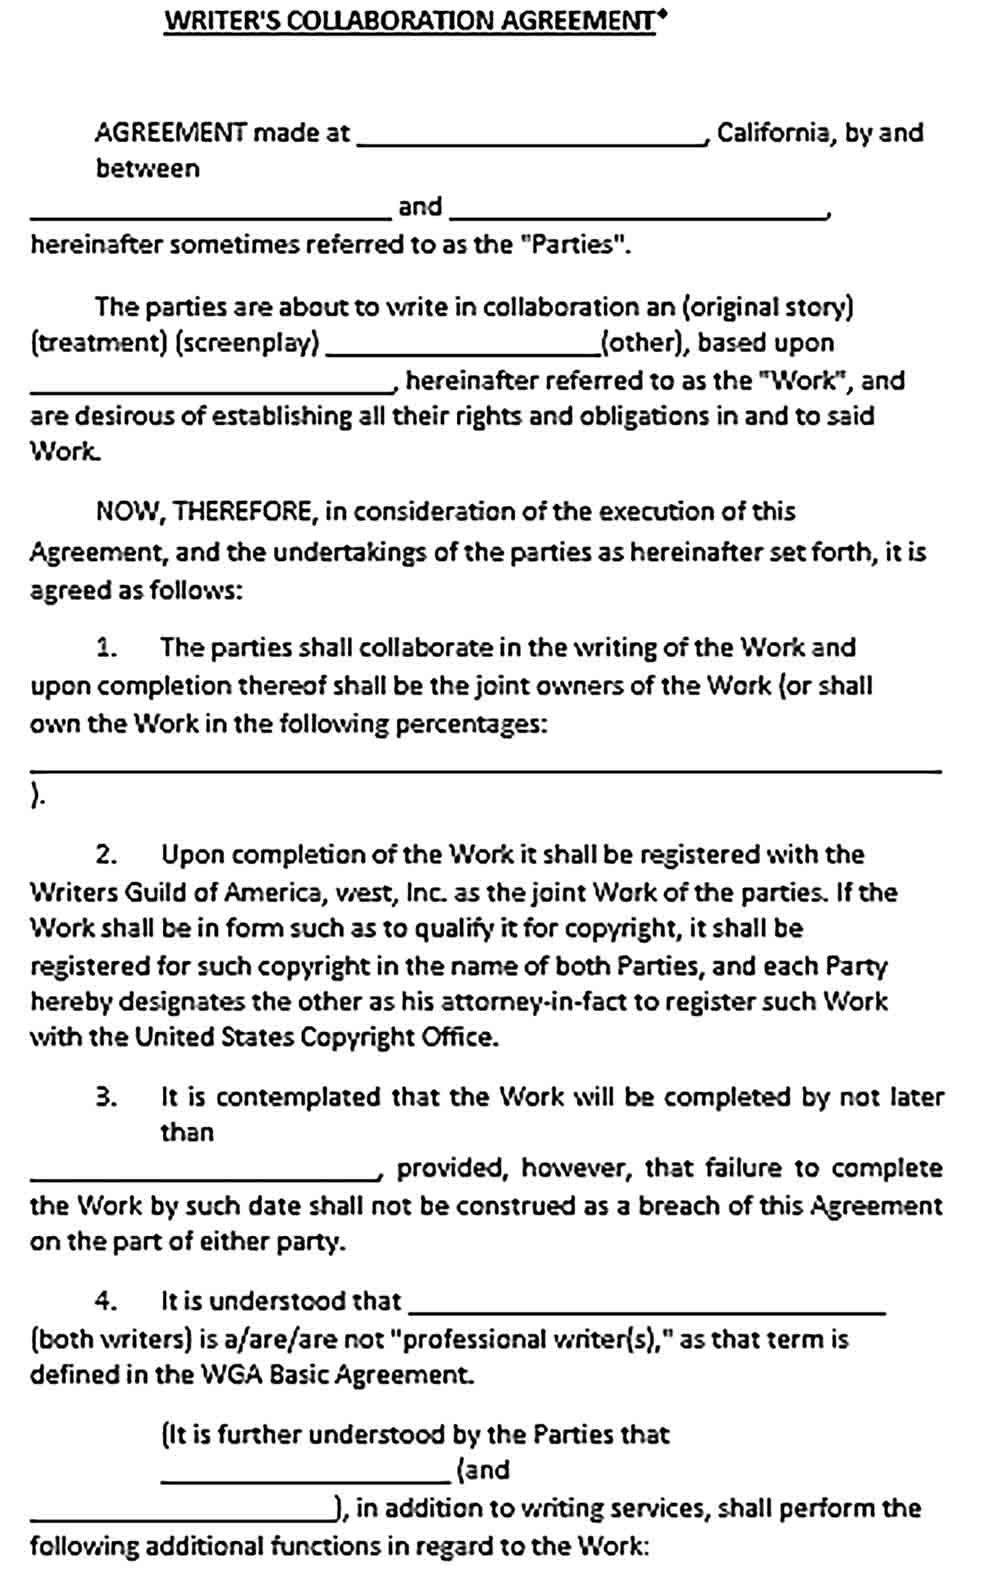 Sample Writers Collaboration Agreement